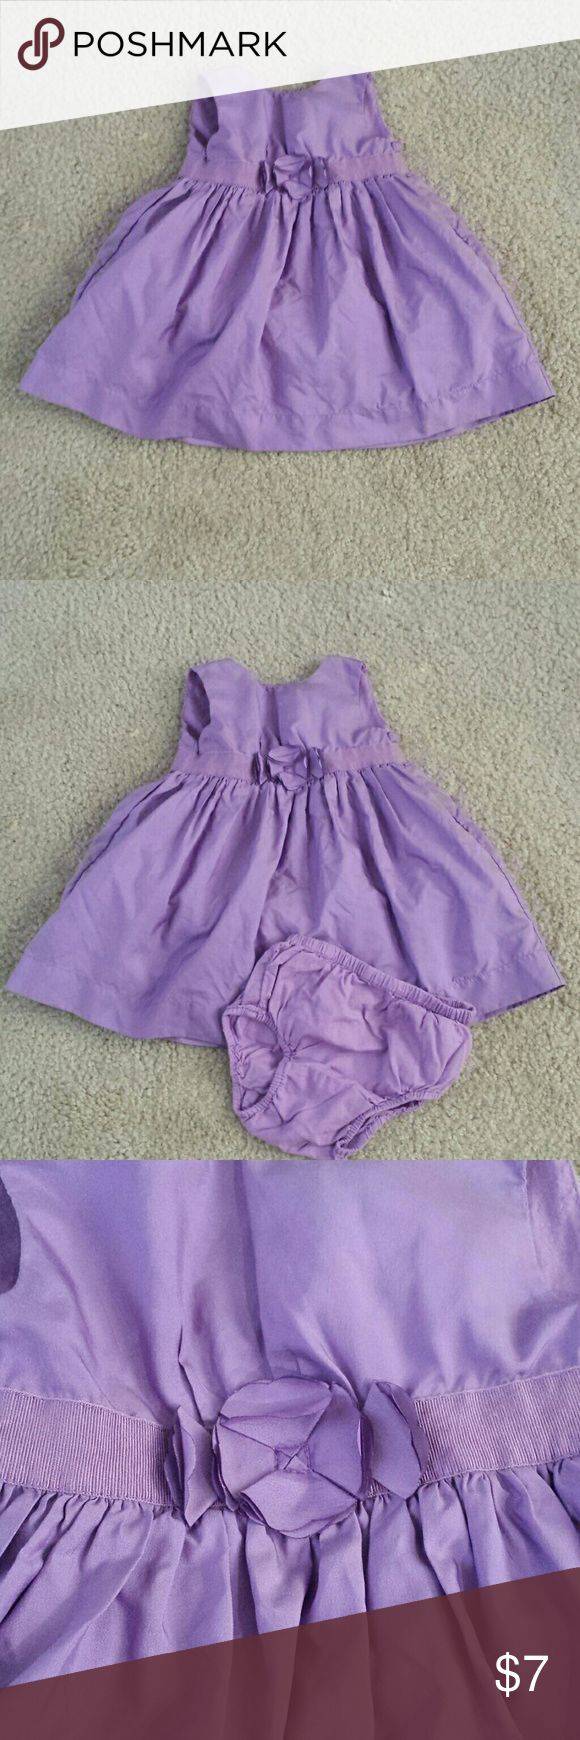 3-6months baby gap dress Cute baby gap dress for 3 - 6 months old GAP Dresses Formal